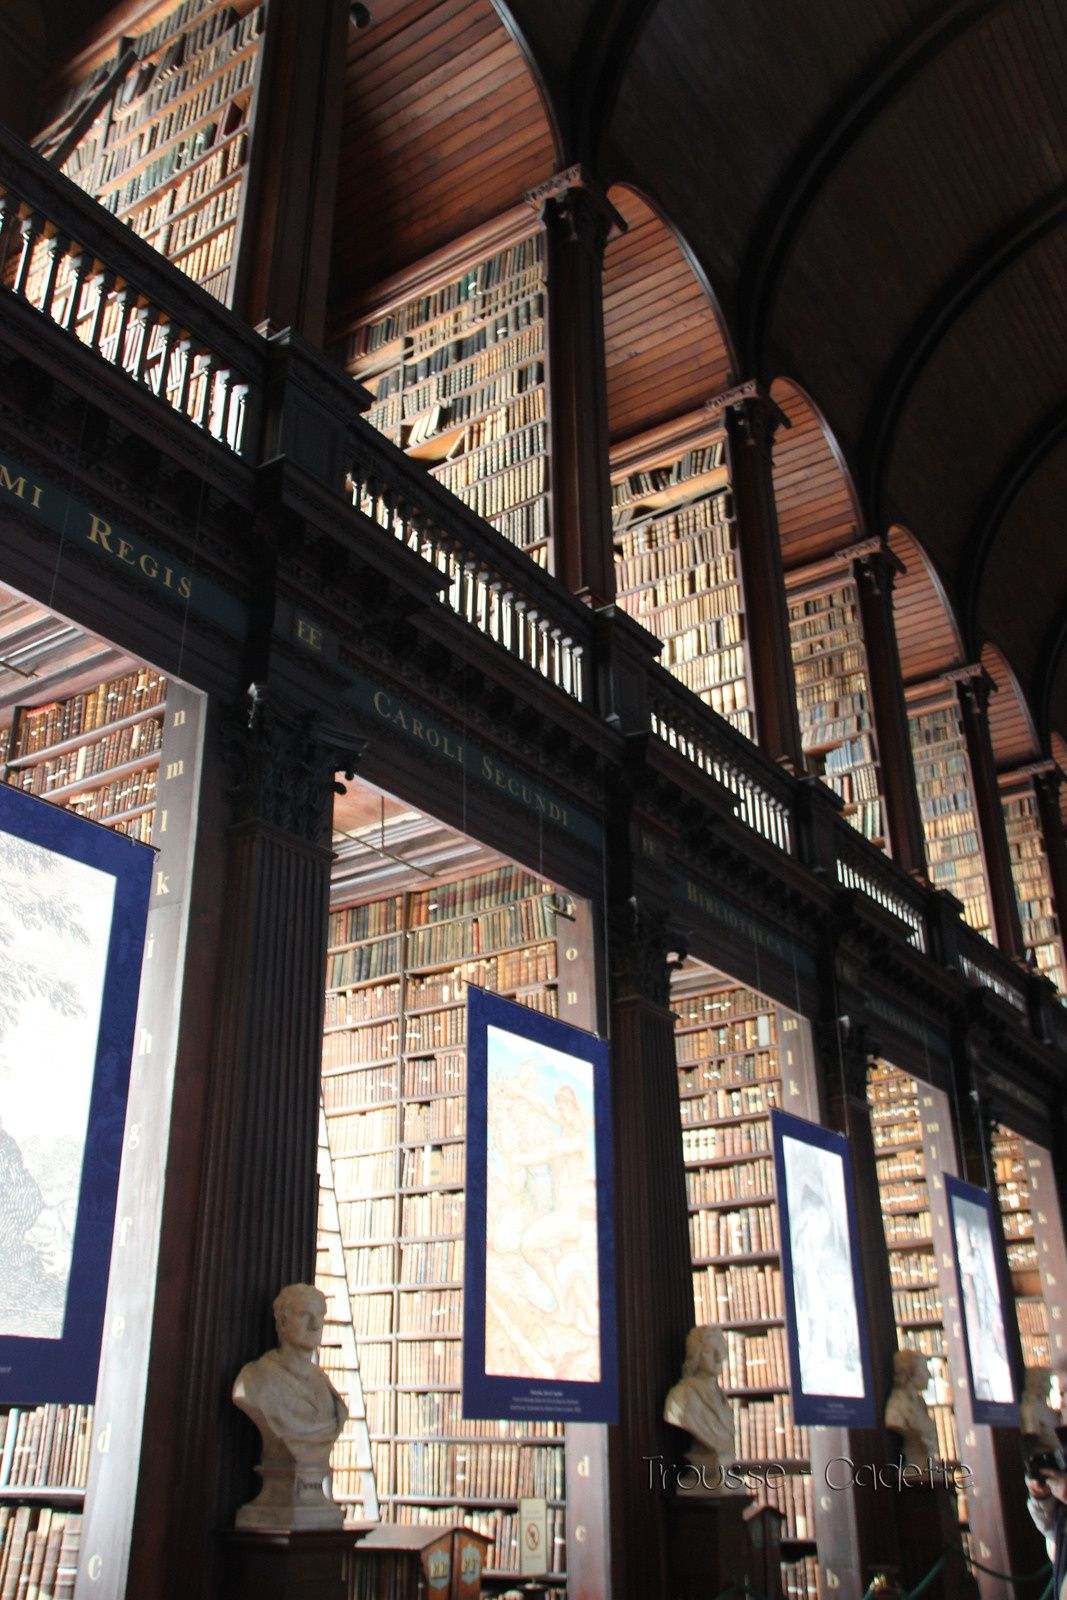 DUBLIN - TRINITY COLLEGE - OLD LIBRARY